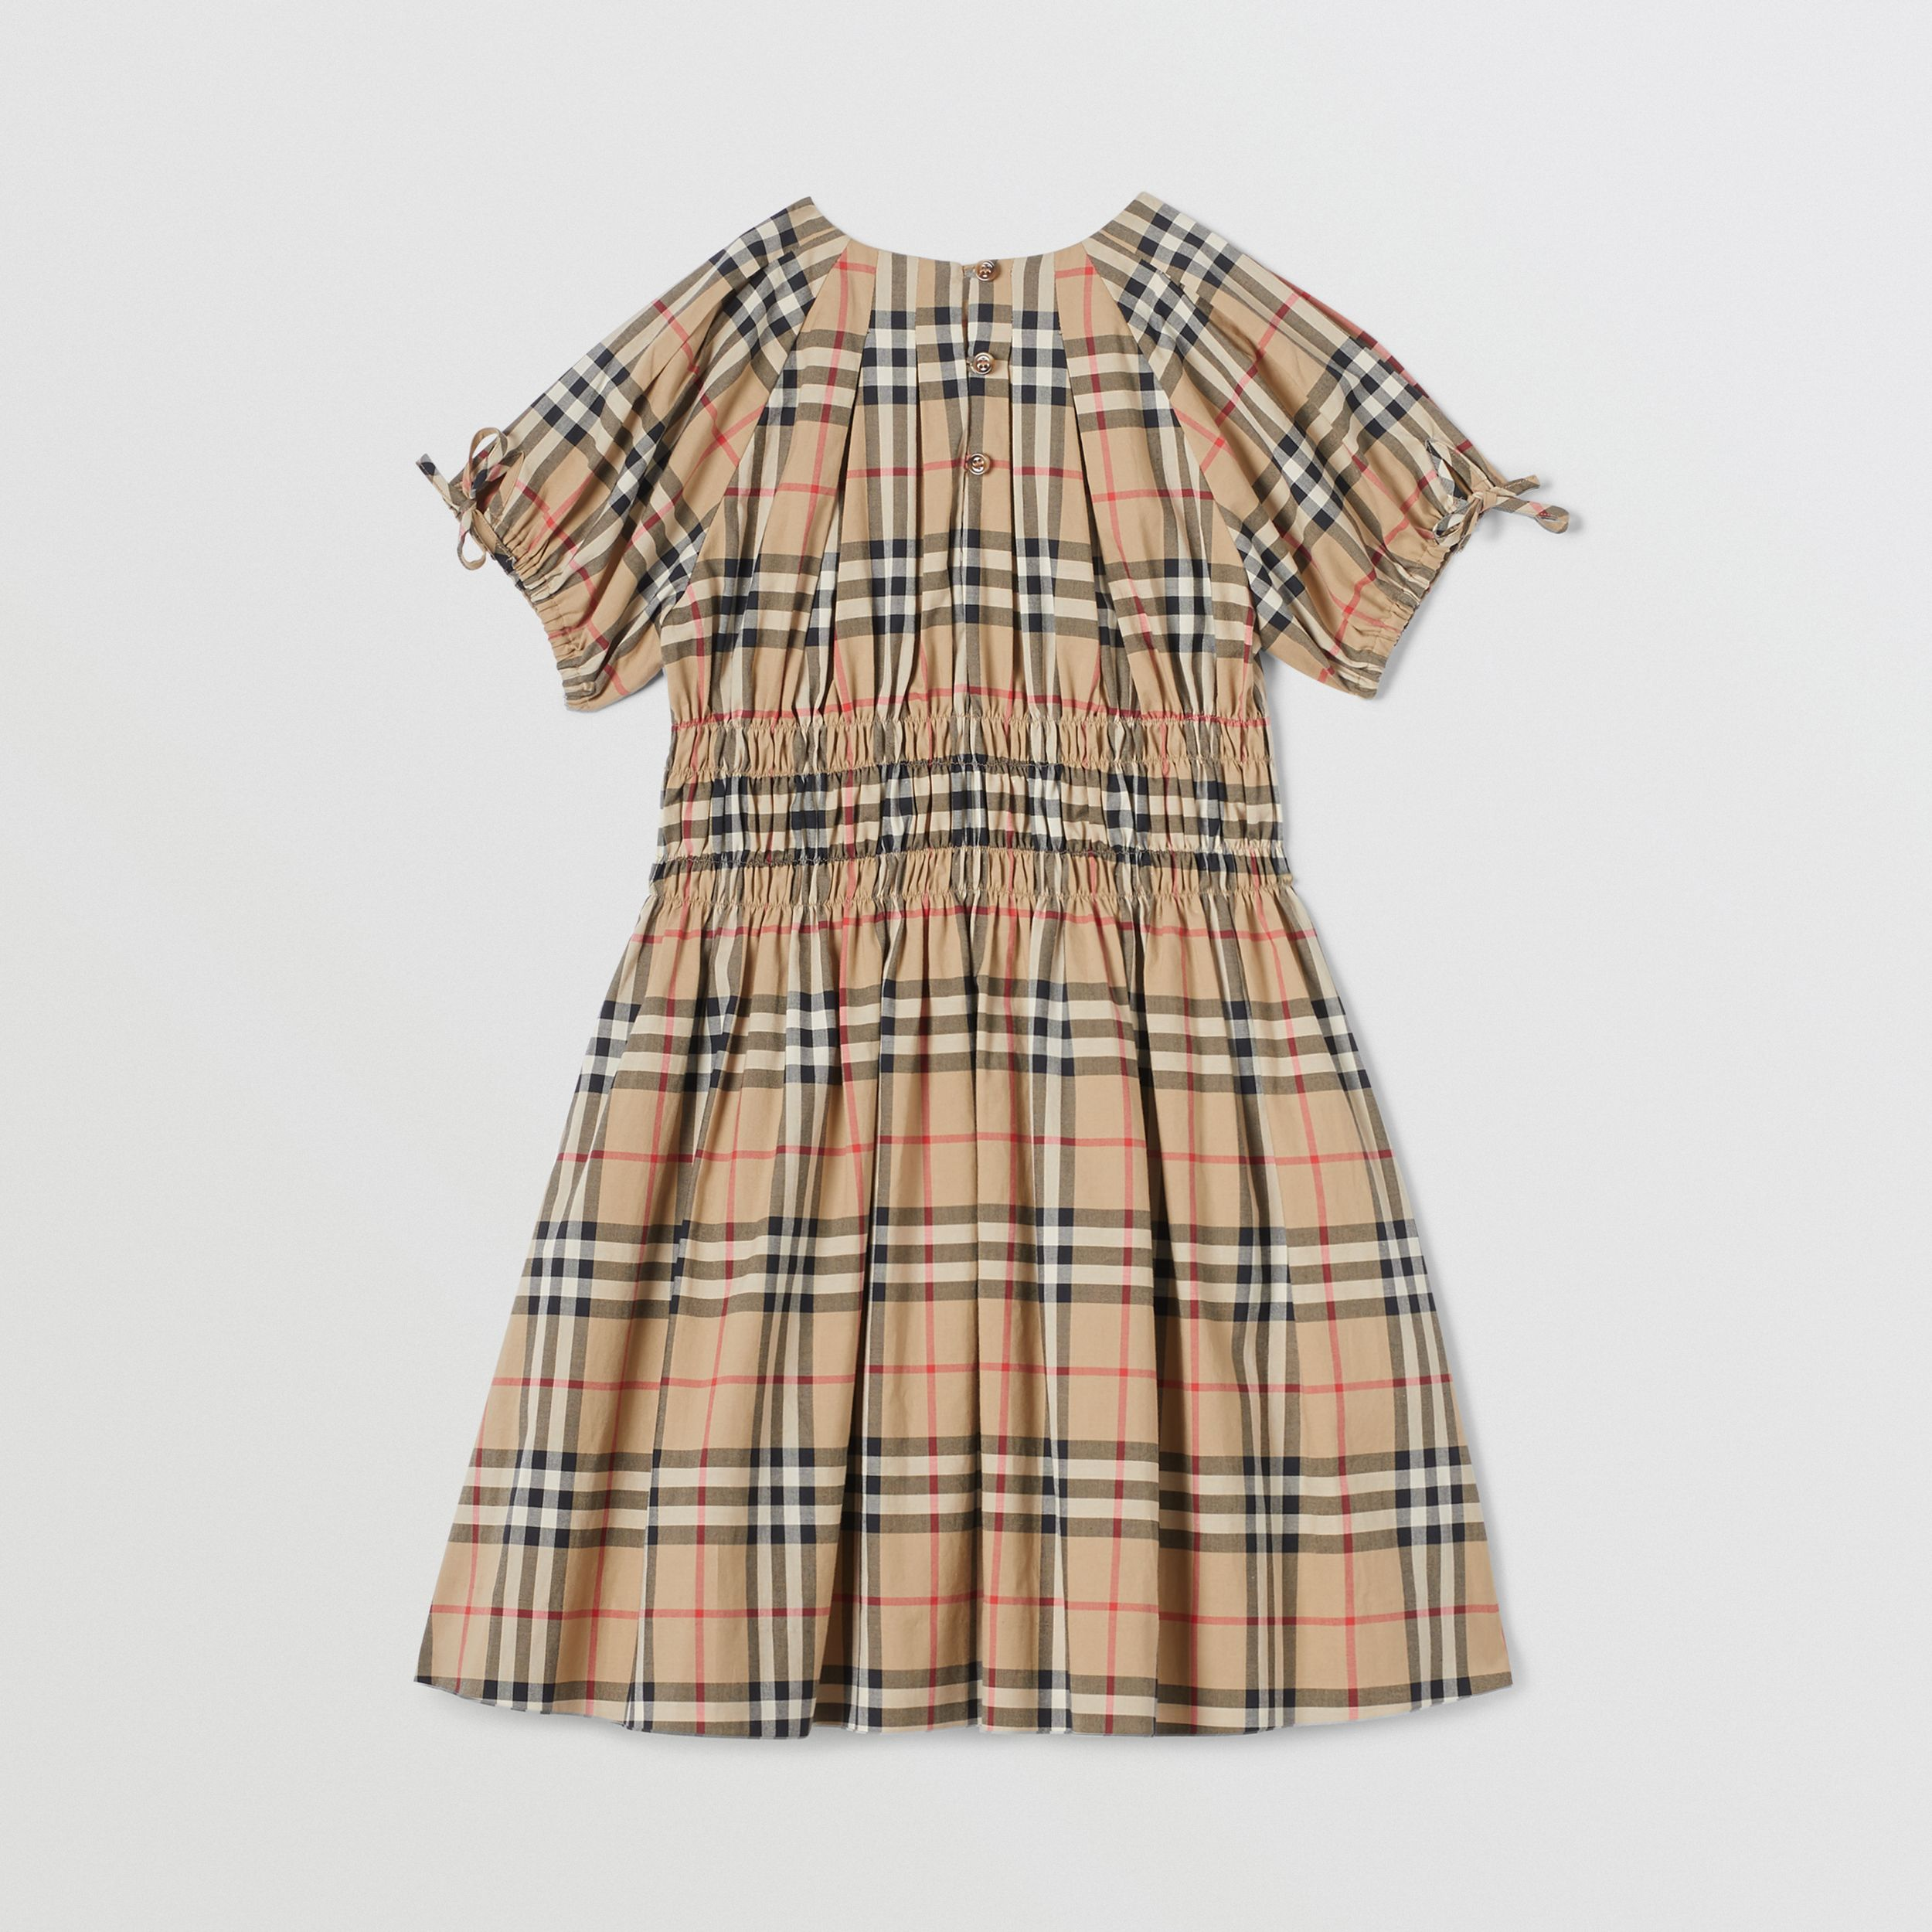 Ruched Panel Vintage Check Cotton Dress in Archive Beige | Burberry - 4